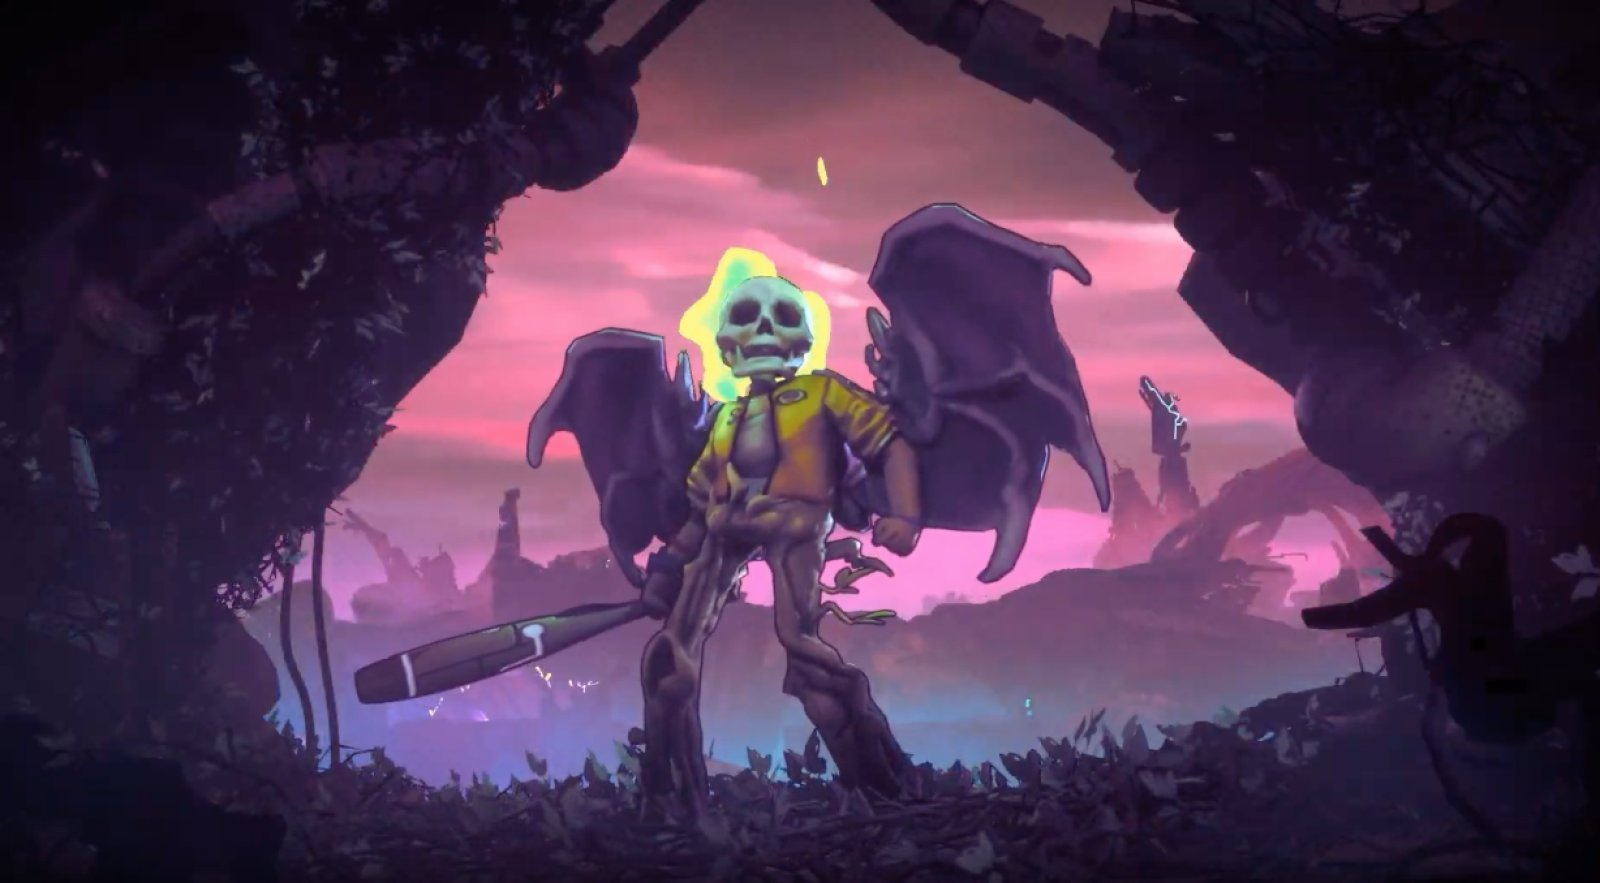 The New Post-Post-Apocalyptic Game Rad Now Has Launched For Console And PC, A Joint Venture Between Double Fine Productions And Bandai Namco